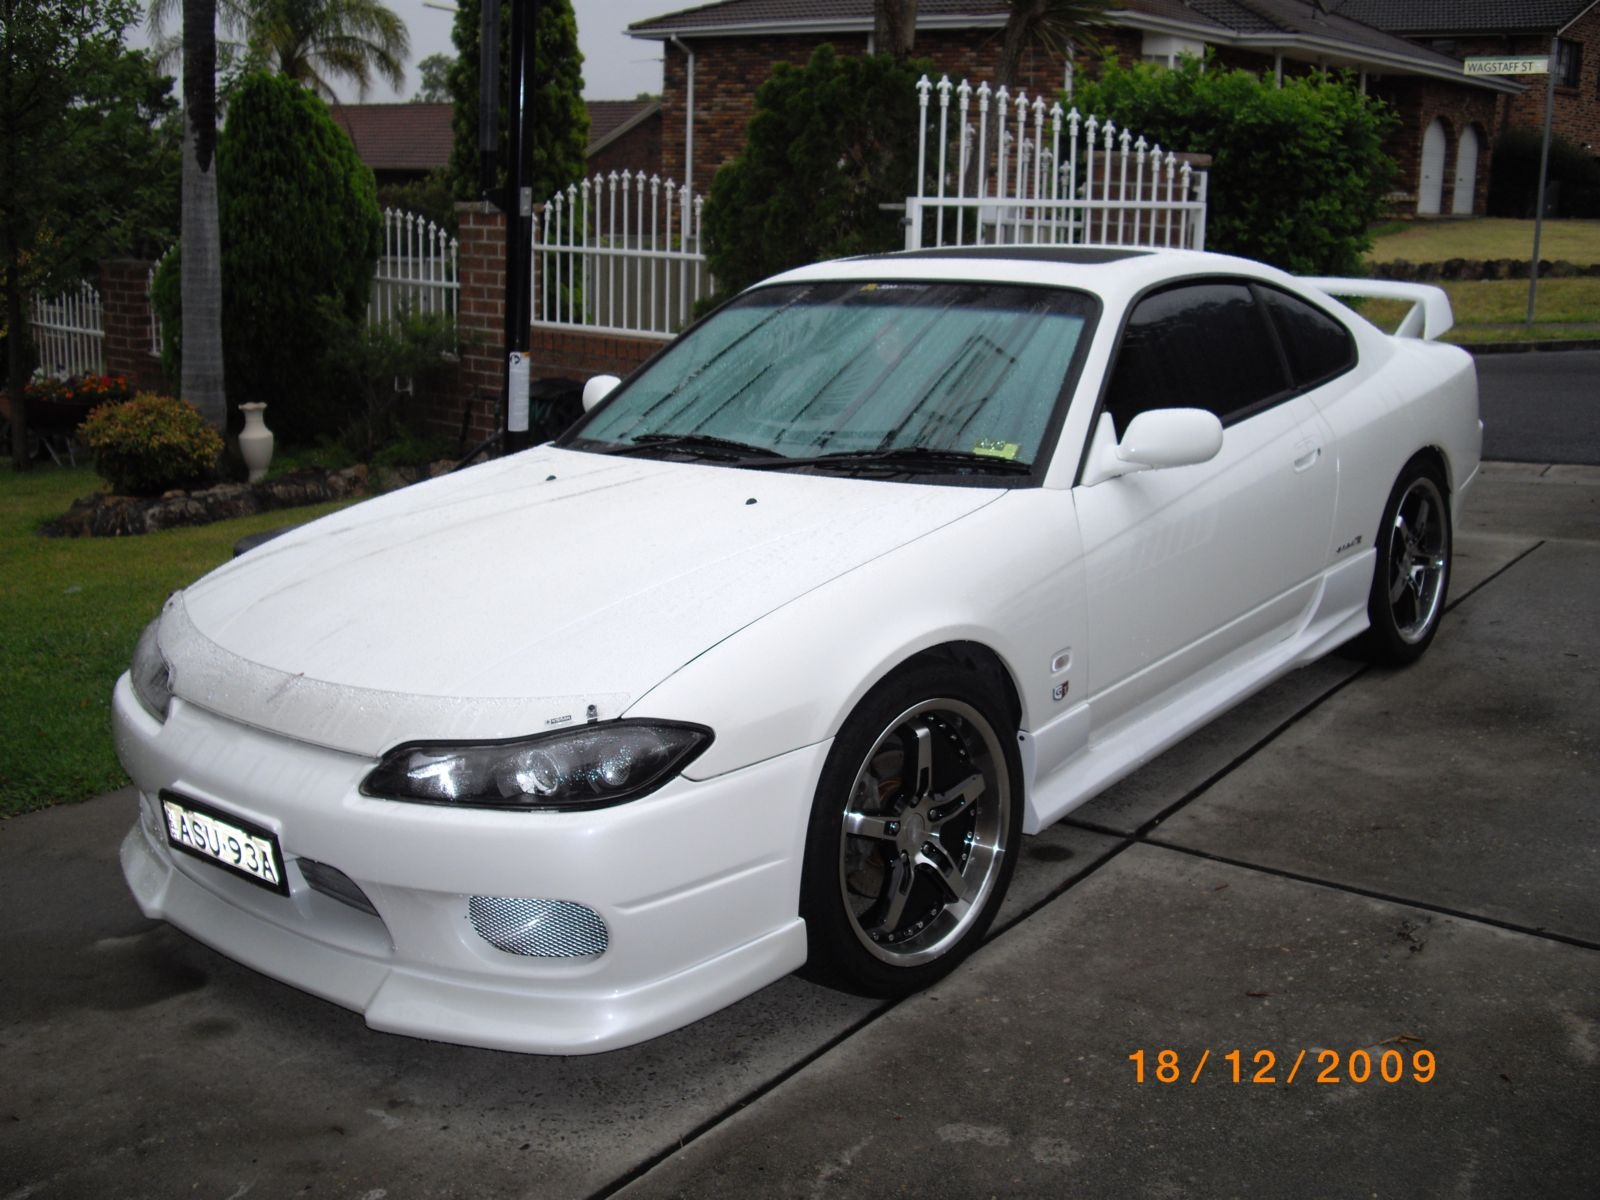 2002 nissan 200sx test drive review cargurus 2002 nissan 200sx test drive review